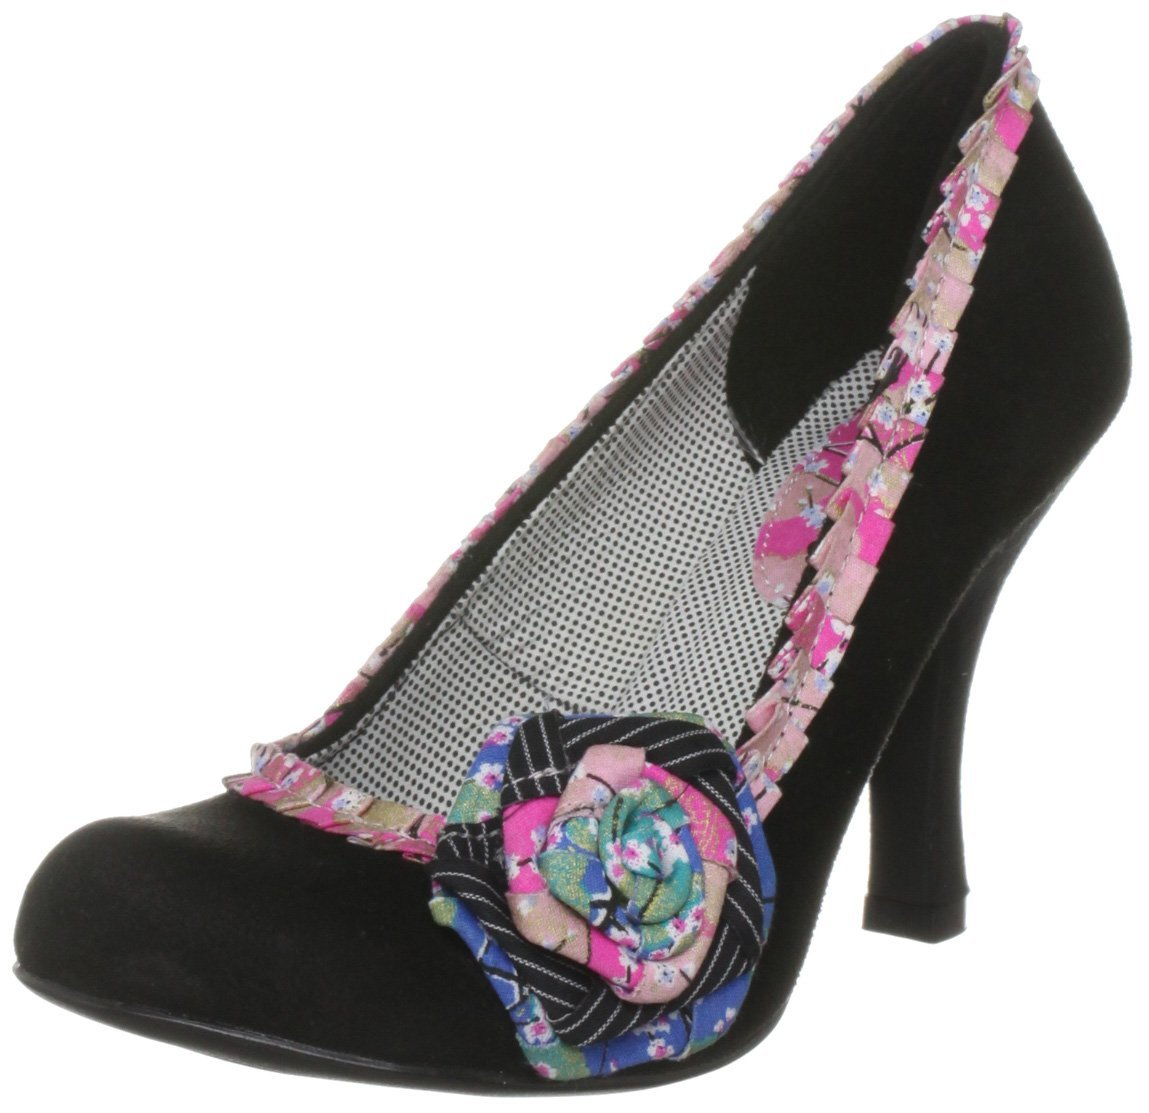 An even more Irregular Choice  – Ruby Shoo heels!